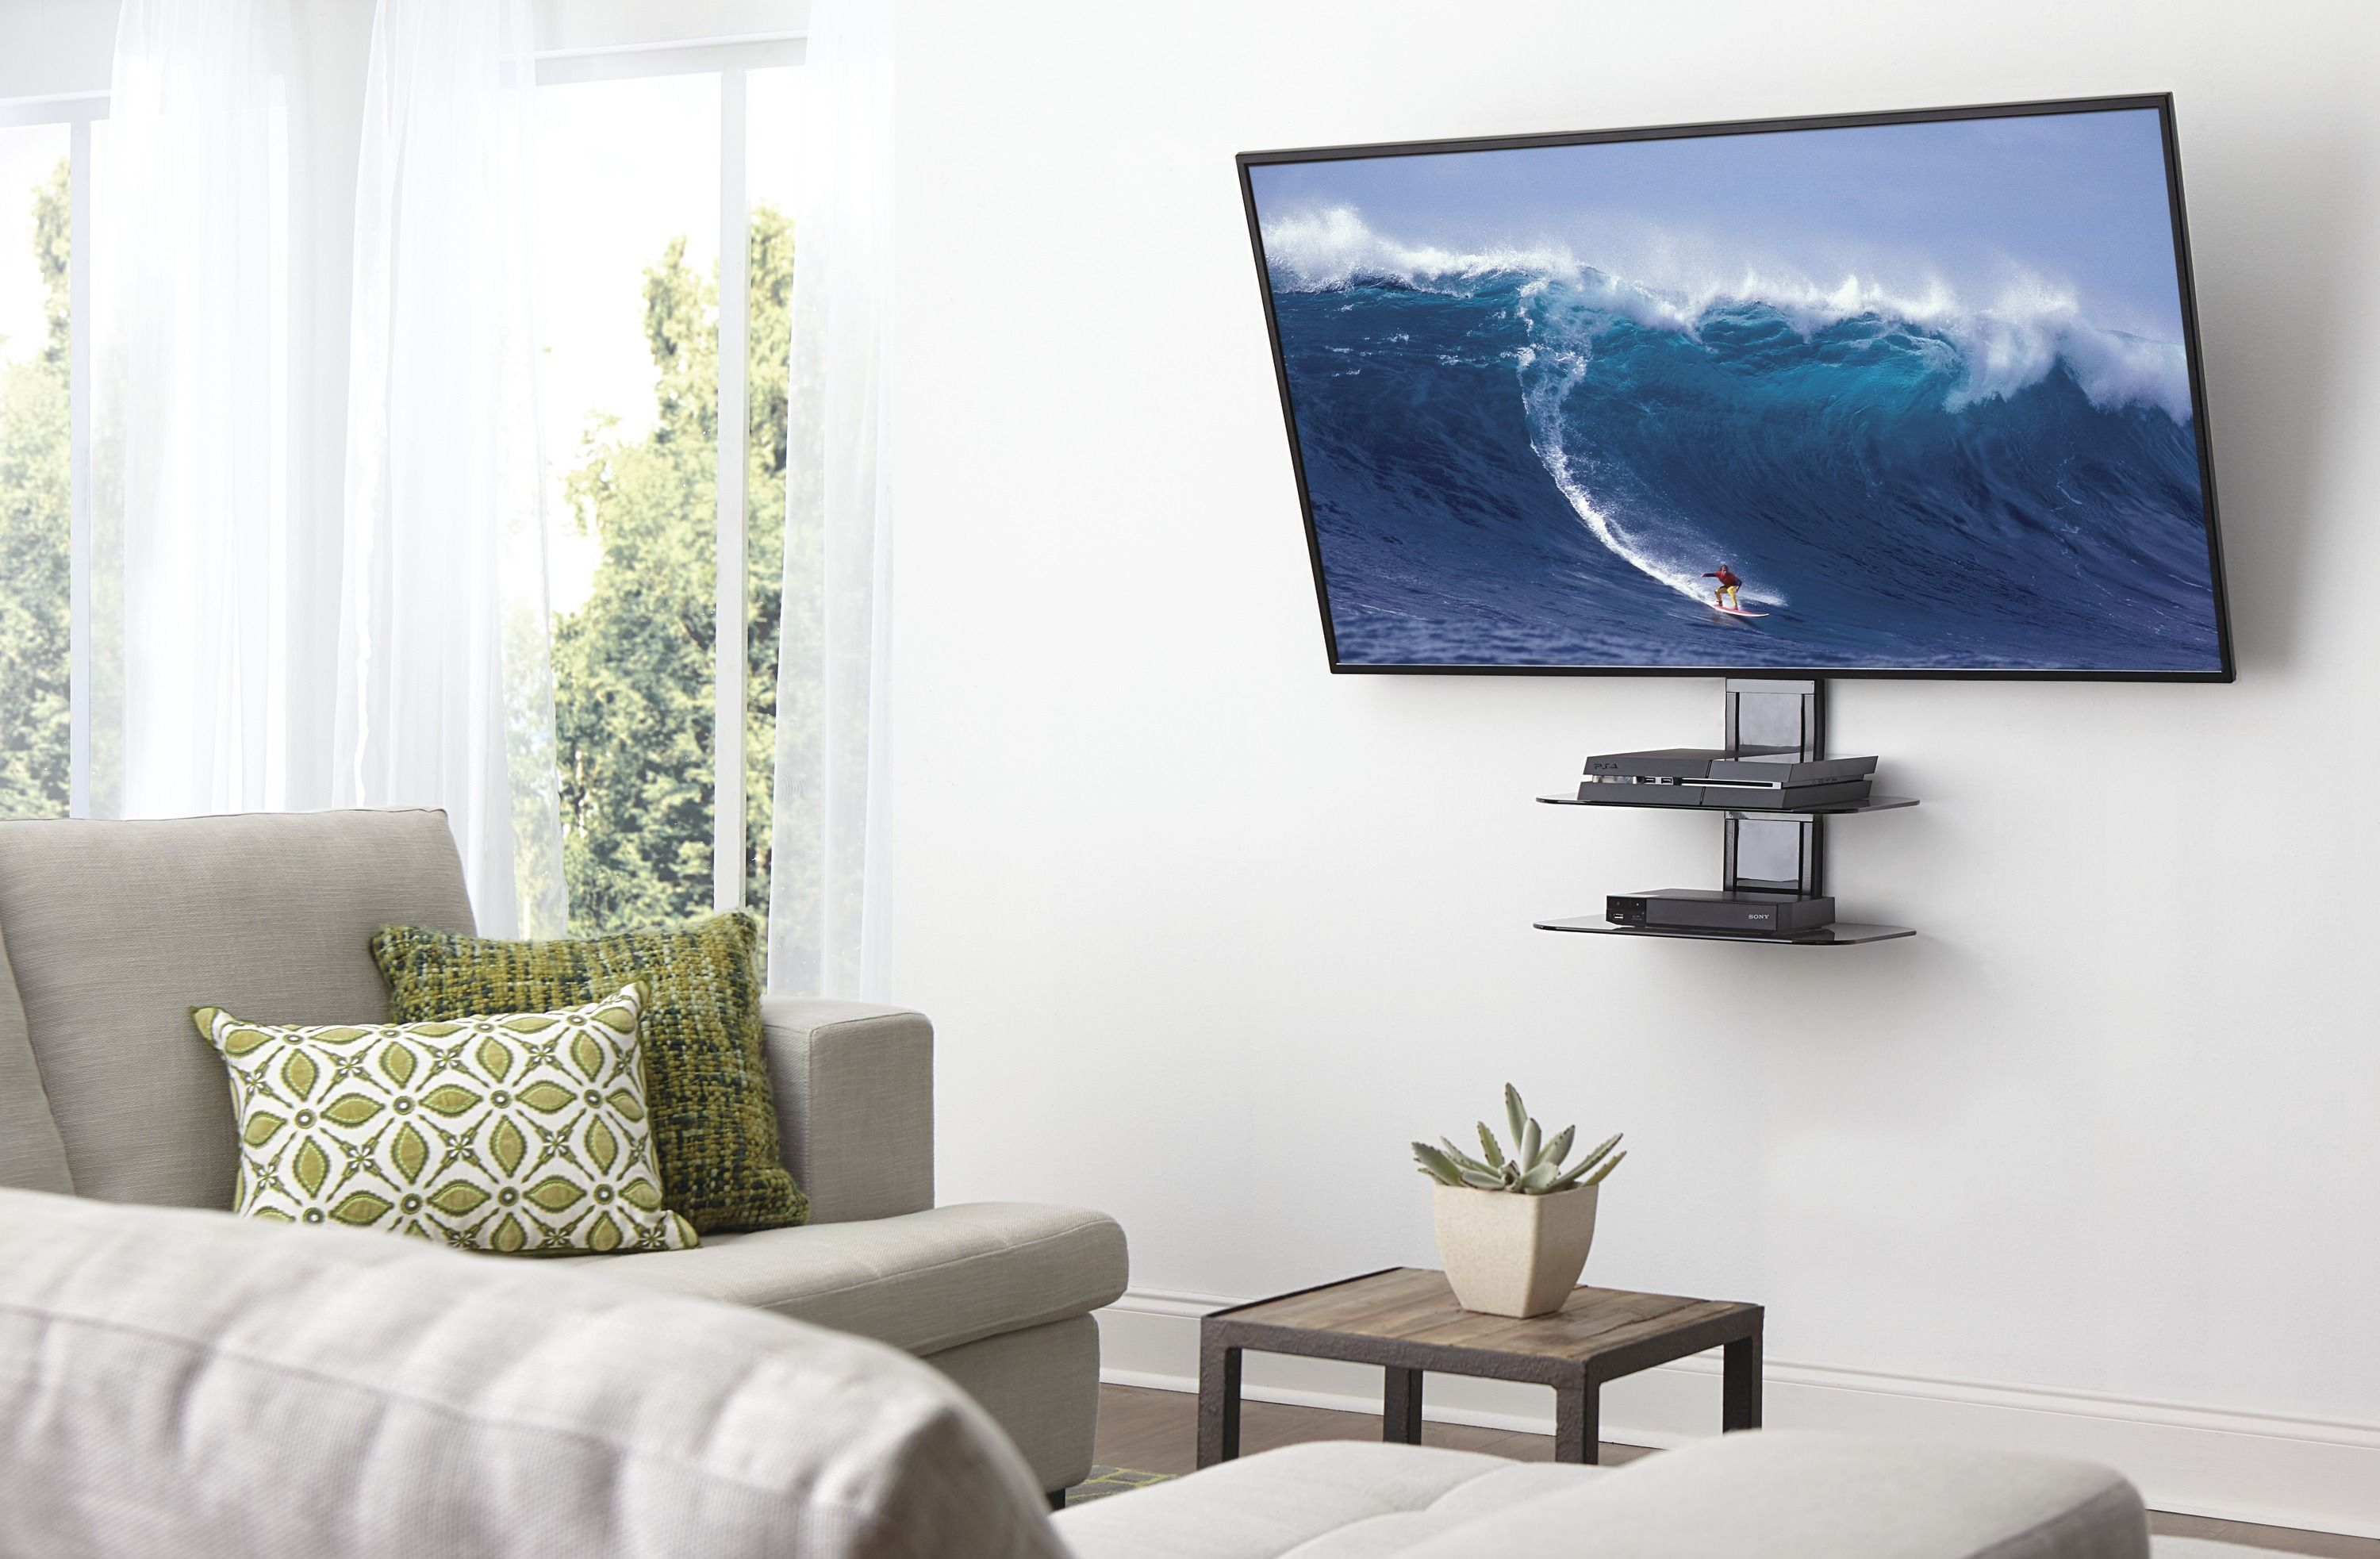 When You Mount A Tv You Don T Want Cords Dangling Everywhere Or Components All Over The Place Luckily There Are Some Org Wall Mounted Tv Mounted Tv Modern Tv